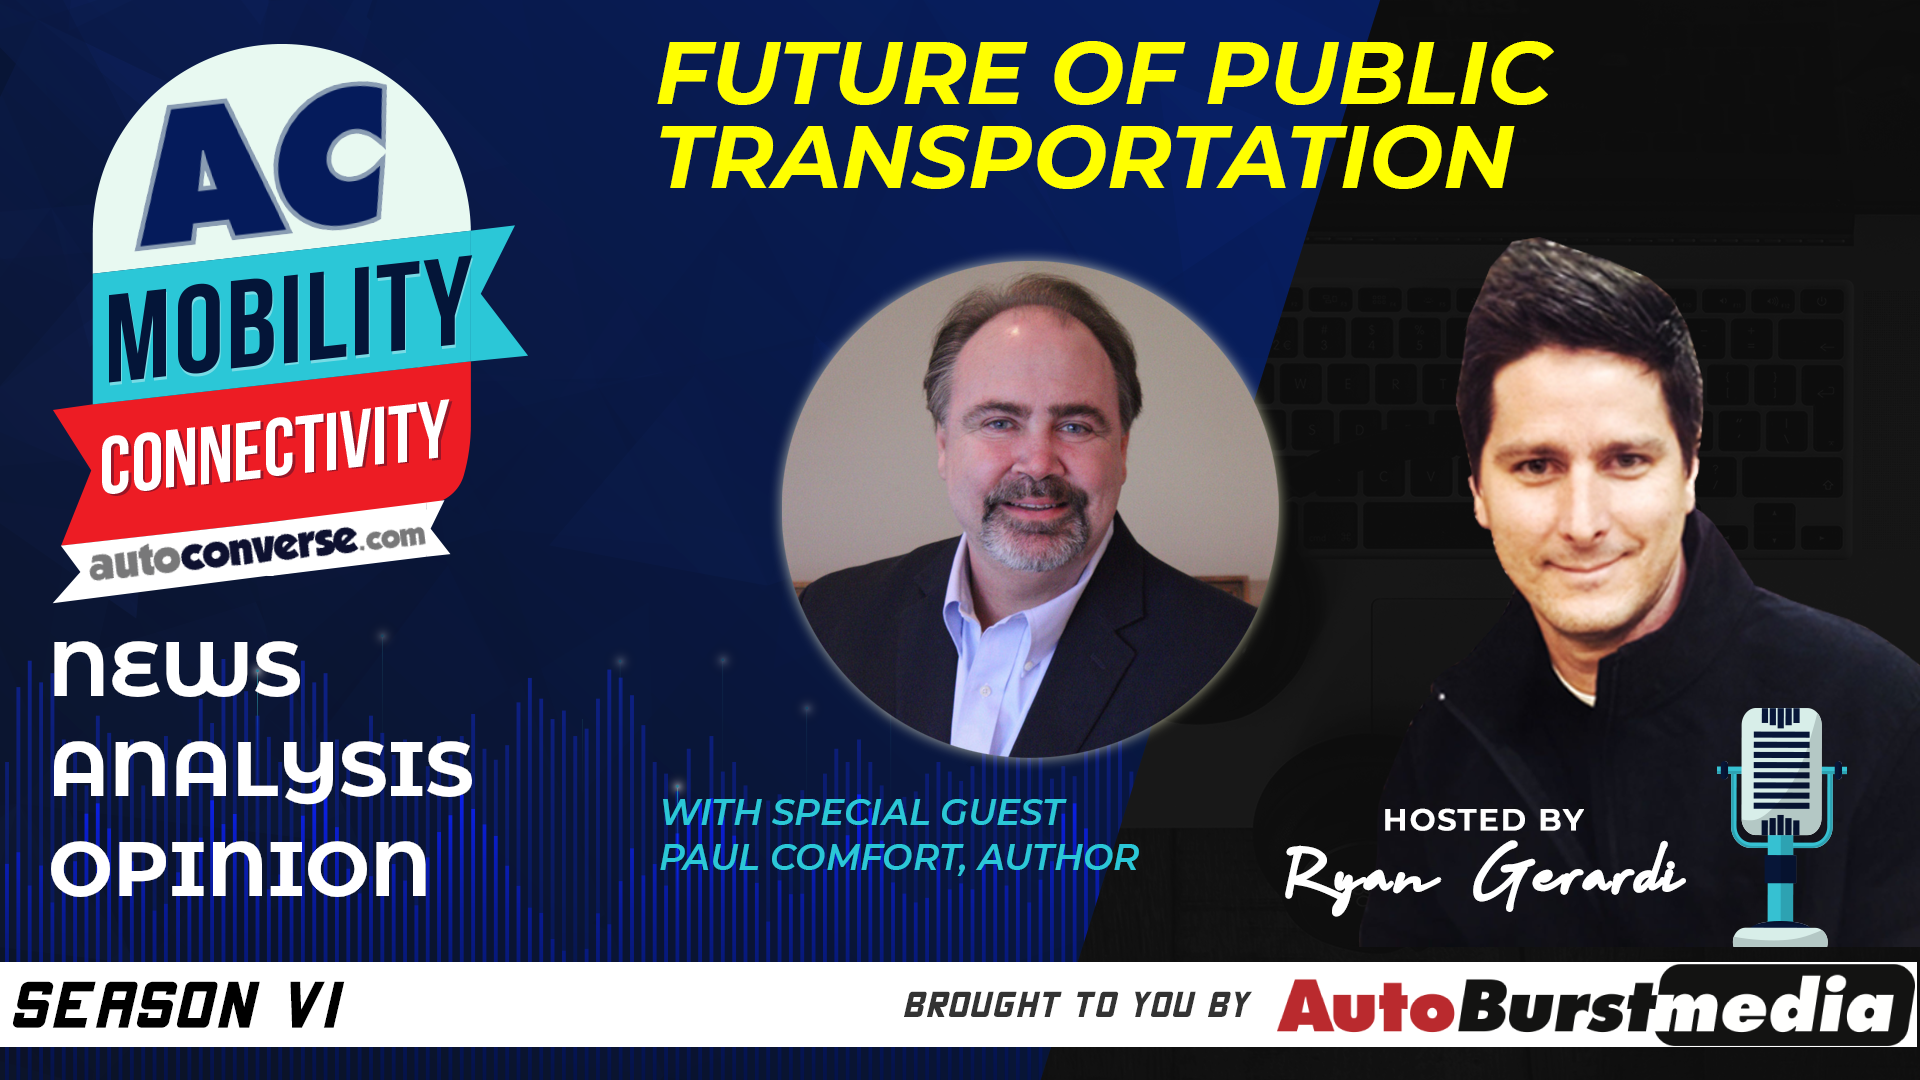 WED MAR 4. MTC Show. The Future of Public Transportation, Book by and Conversation with Author Paul Comfort